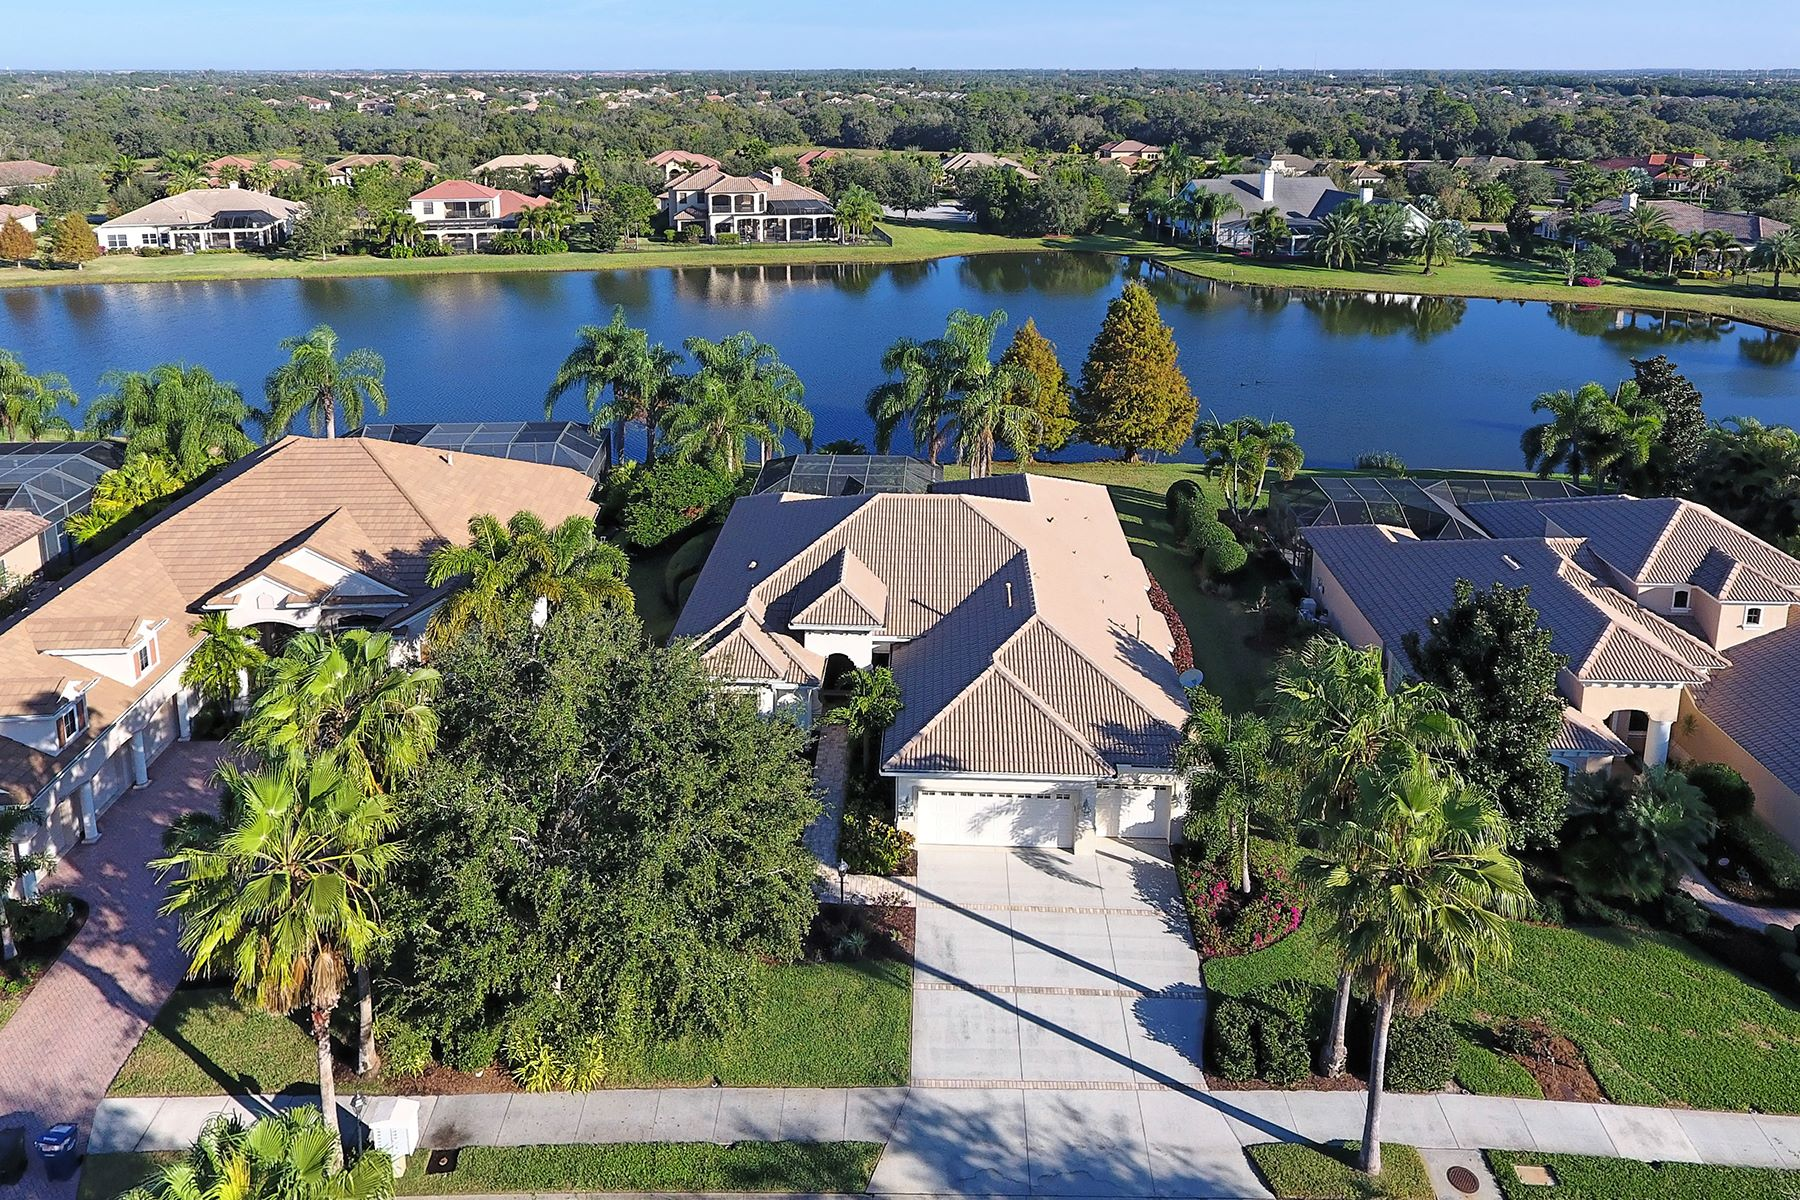 Single Family Home for Sale at LAKEWOOD RANCH COUNTRY CLUB 7018 Kingsmill Ct Lakewood Ranch, Florida, 34202 United States